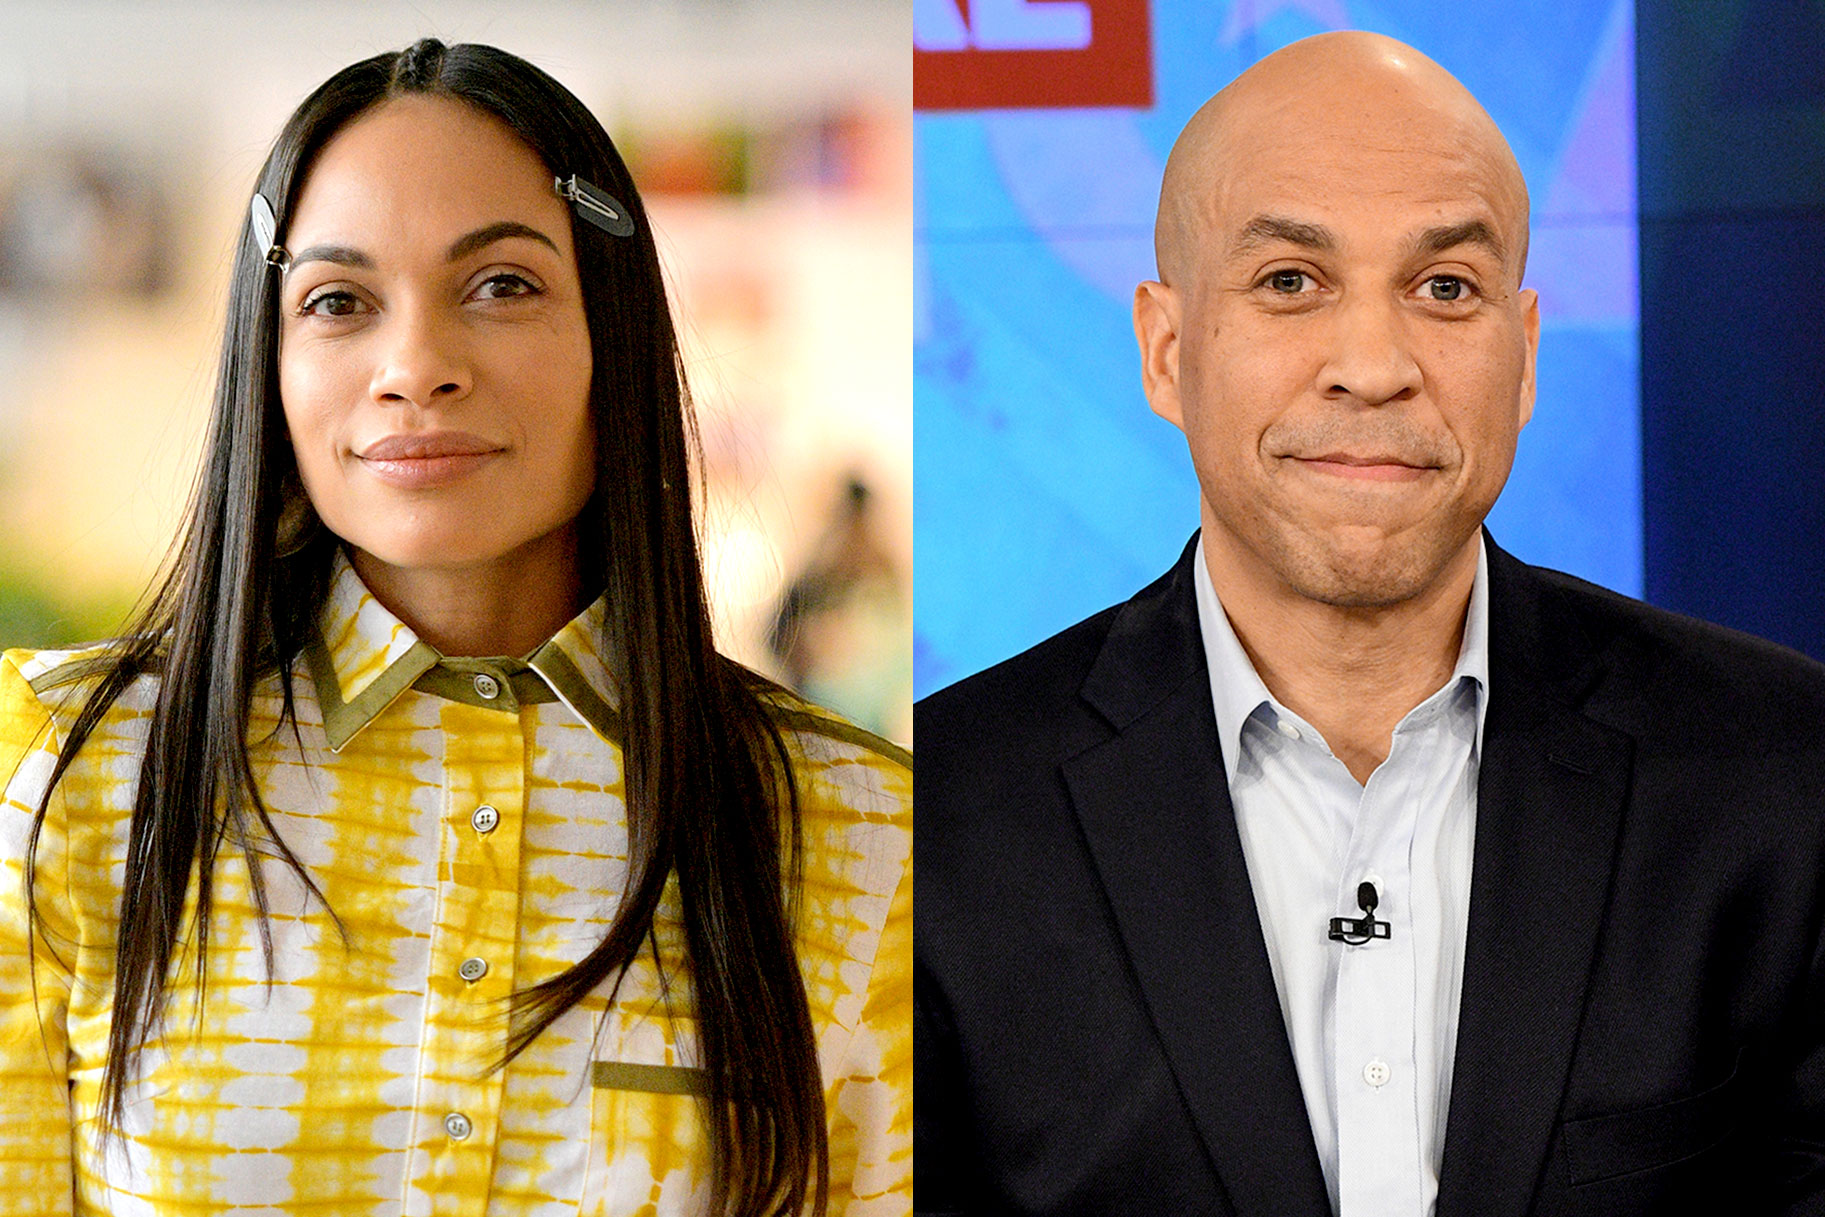 Rosario Dawson dating Cory Booker